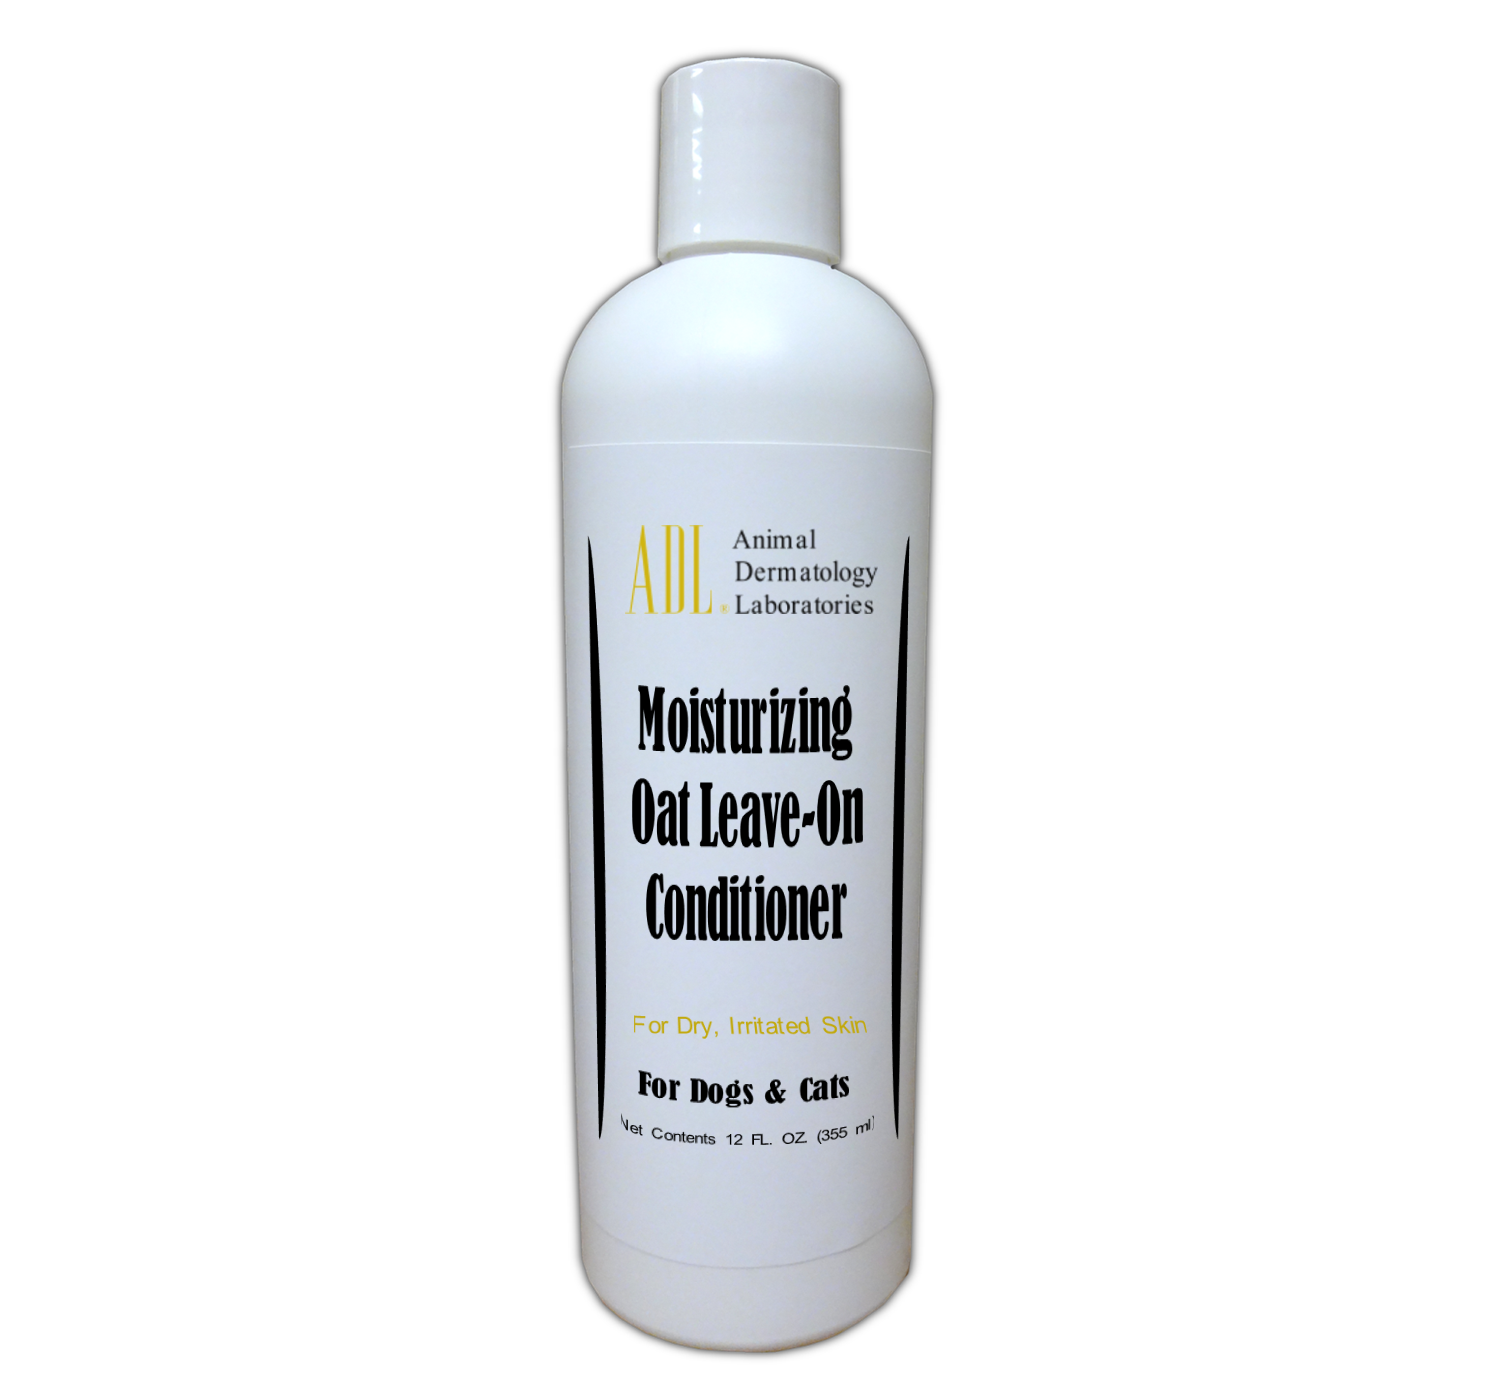 Oat Leave-On Conditioner